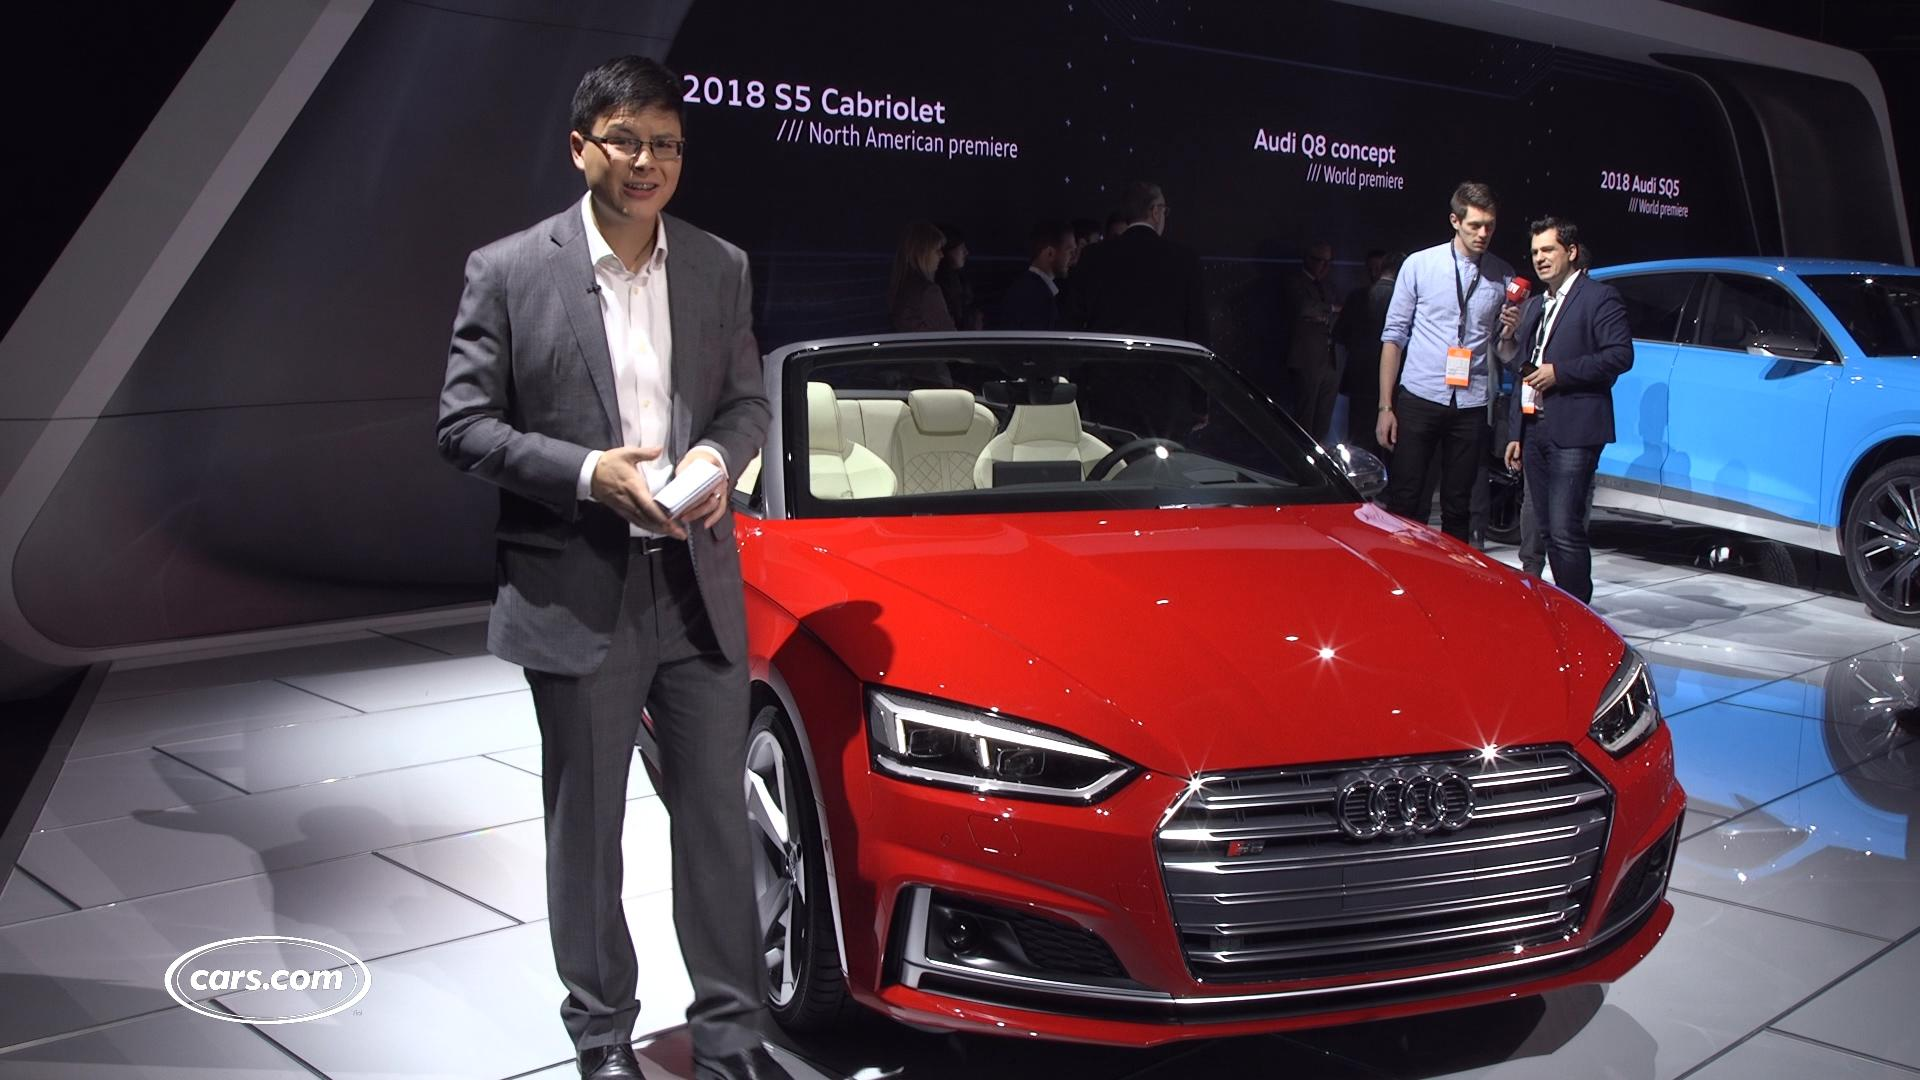 2018 Audi S5 Cabriolet Review: First Impressions